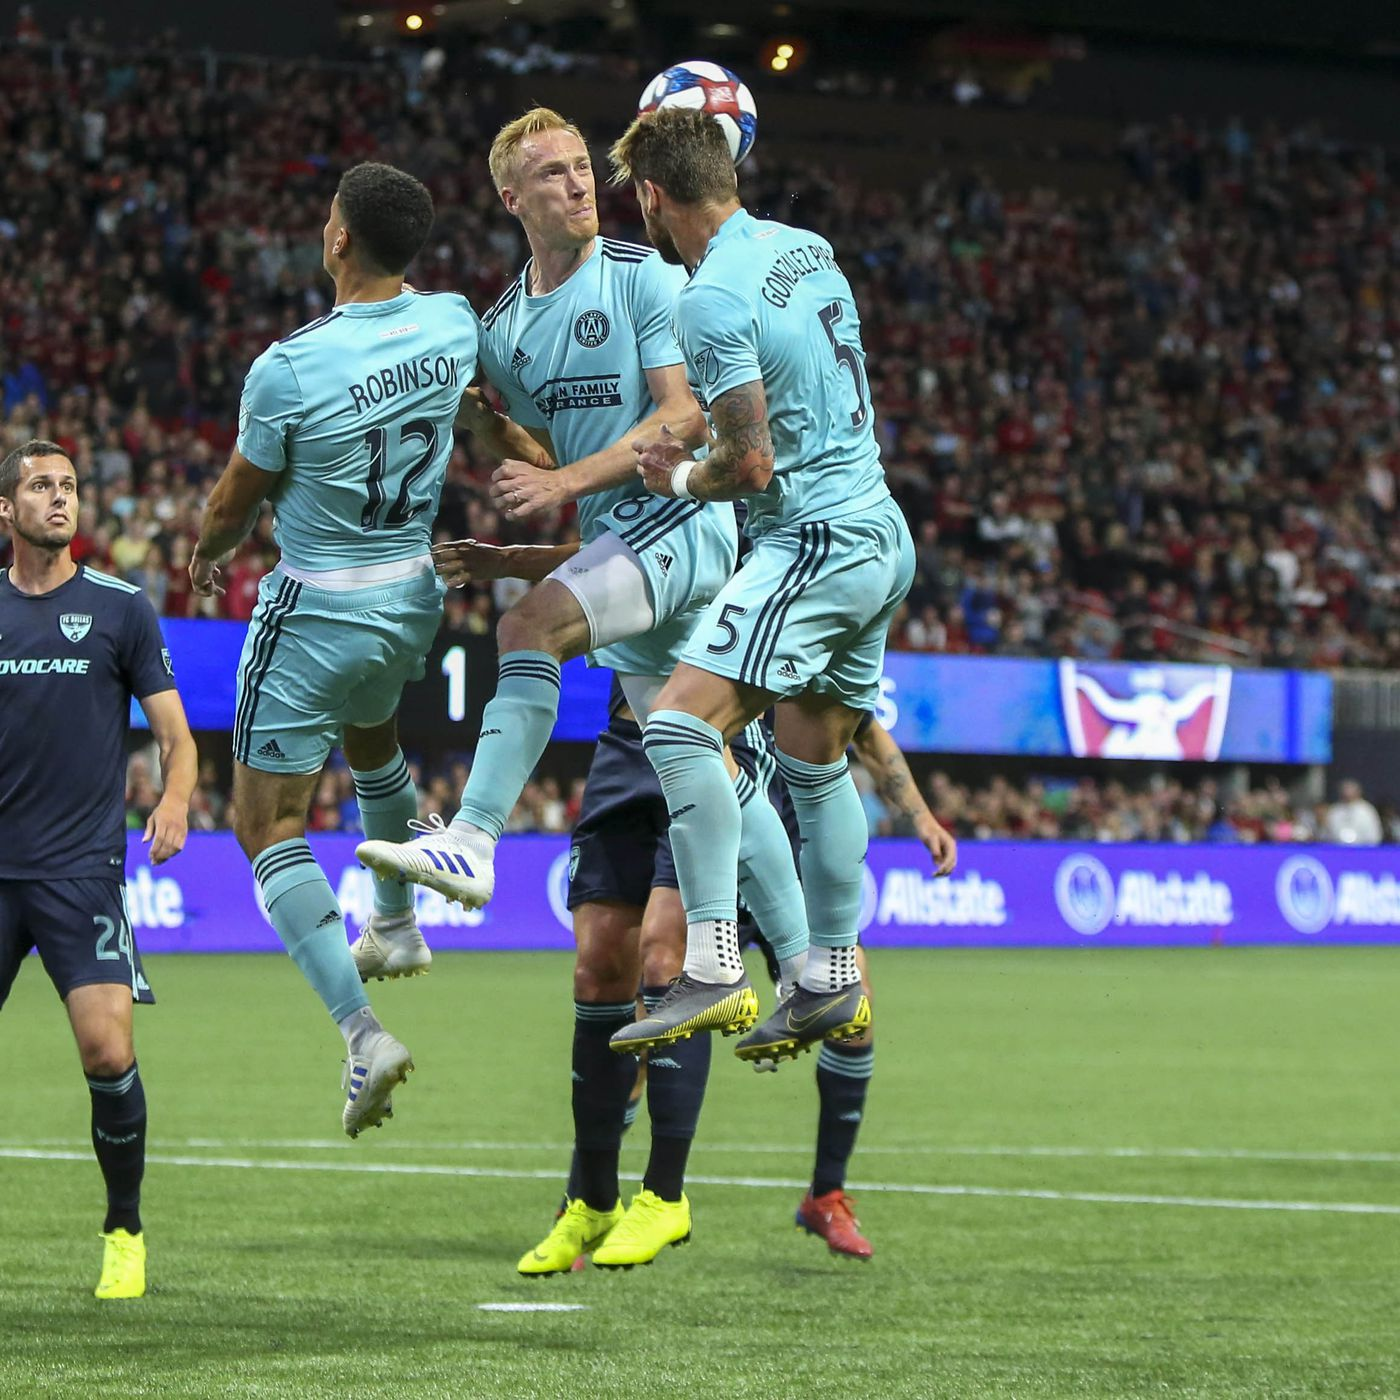 newest 29c8c c8303 Four thoughts on Atlanta United losing to FC Dallas at home - Dirty South  Soccer